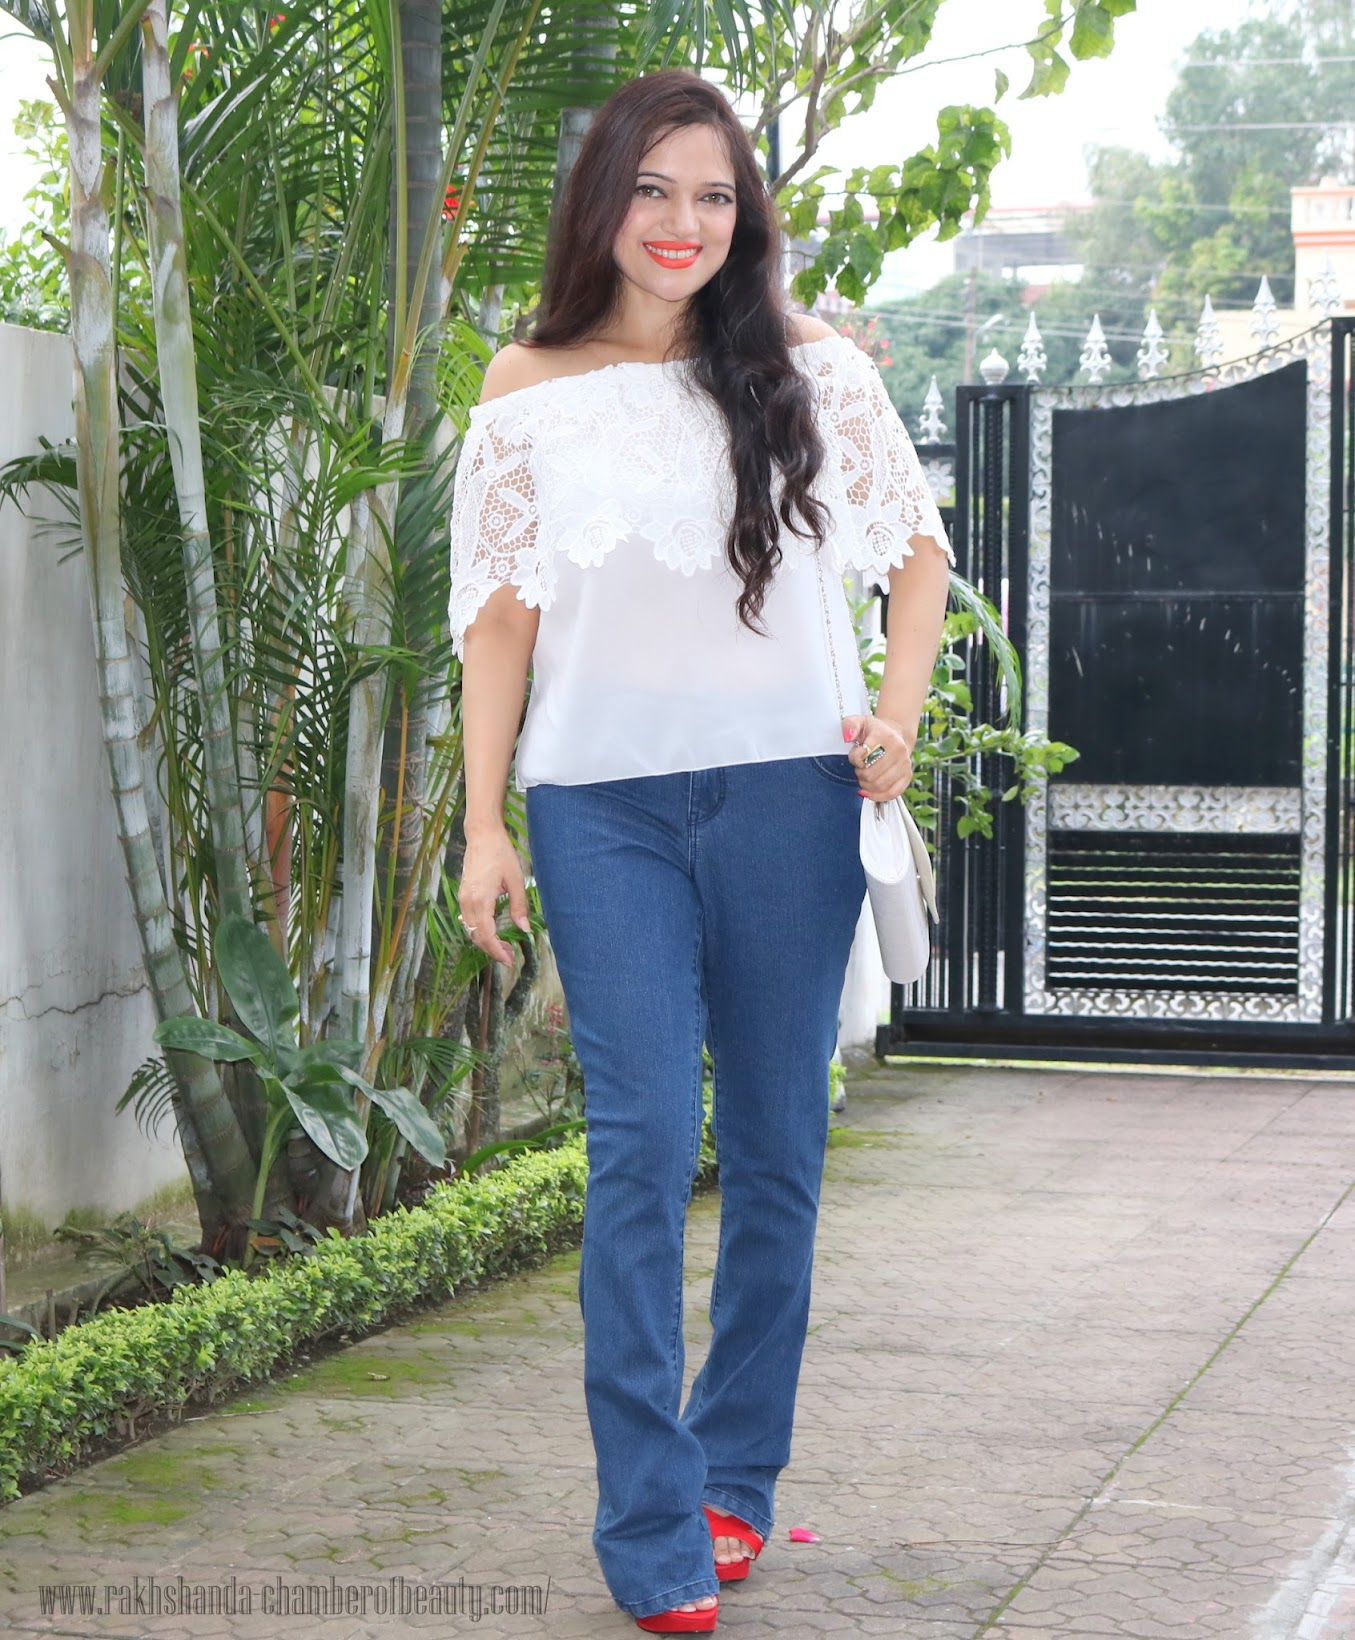 Styling an off-shoulder lace top- OOTD, How to wear off shoulder, cndirect.com, Dorothy Perkins flared jeans, retro look, Indian fashion blogger, Chamber of Beauty